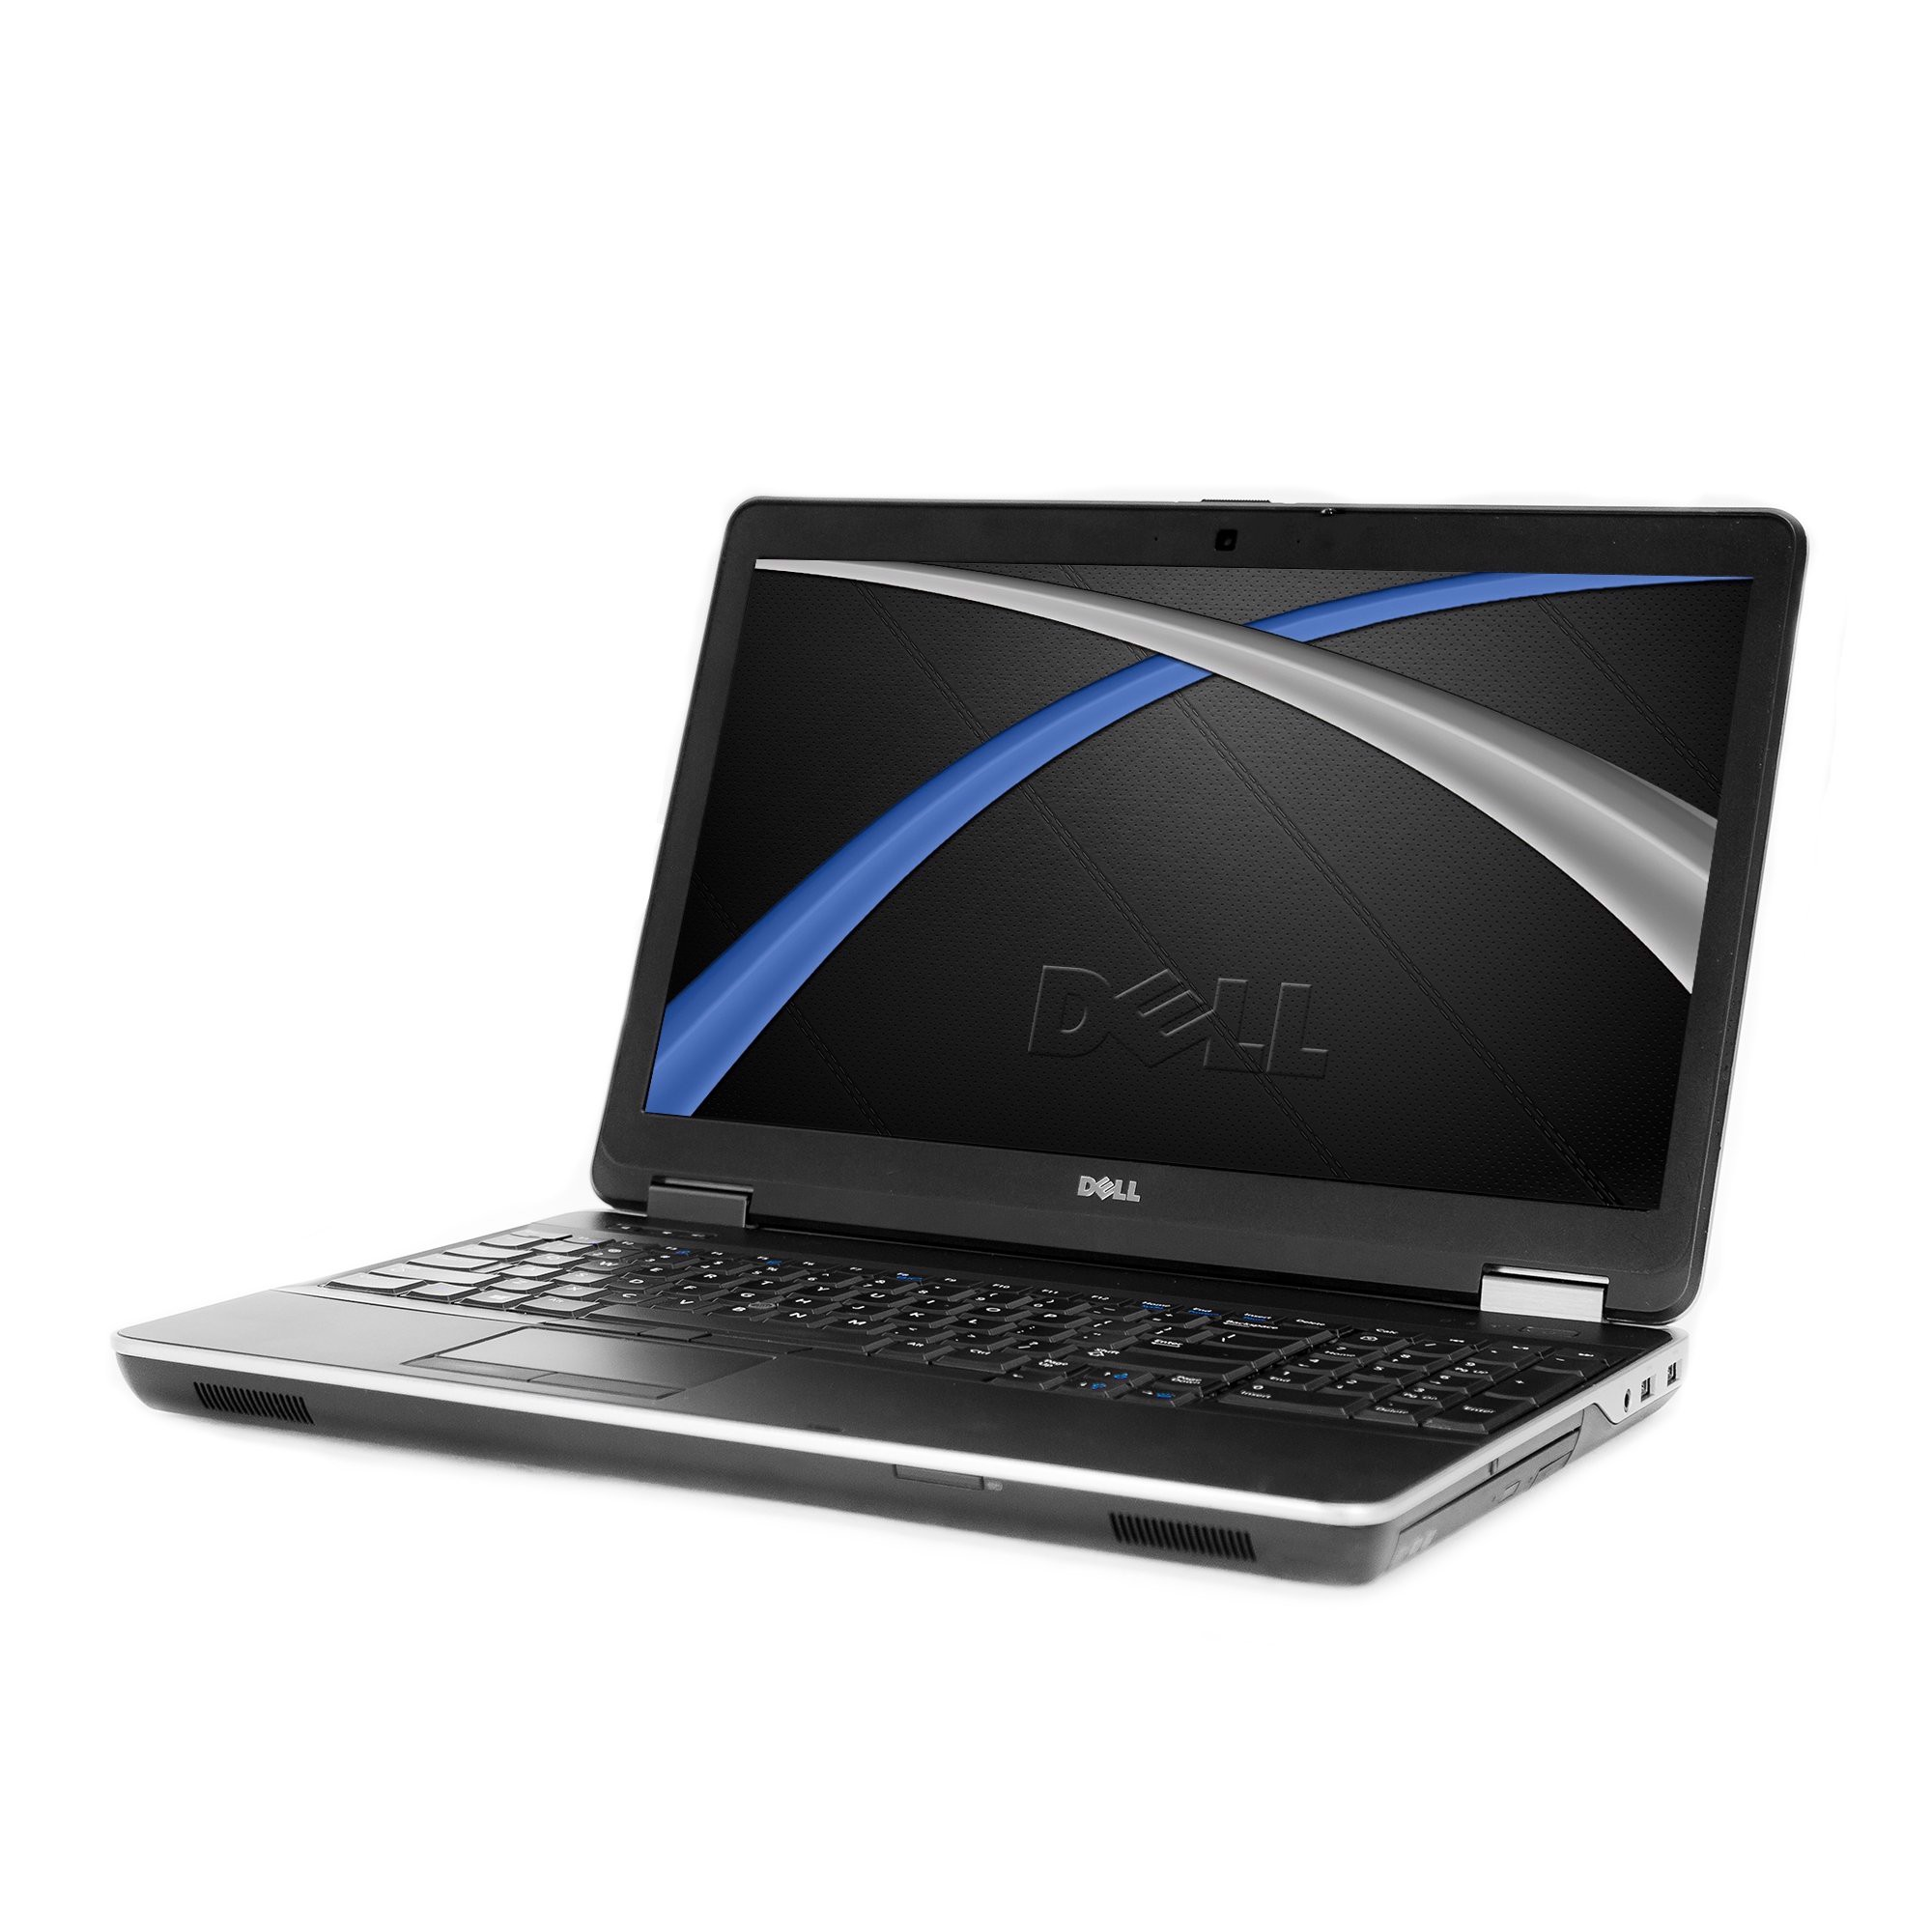 DELL LATITUDE E 6540 Core I7 8GB RAM 128GB SSD